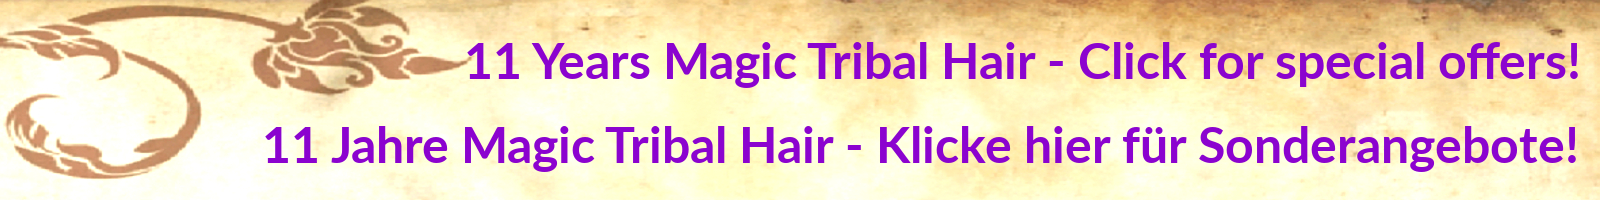 Hair Pieces, Braids, Headbands & Buns in Custom Colors MAGIC TRIBAL HAIR